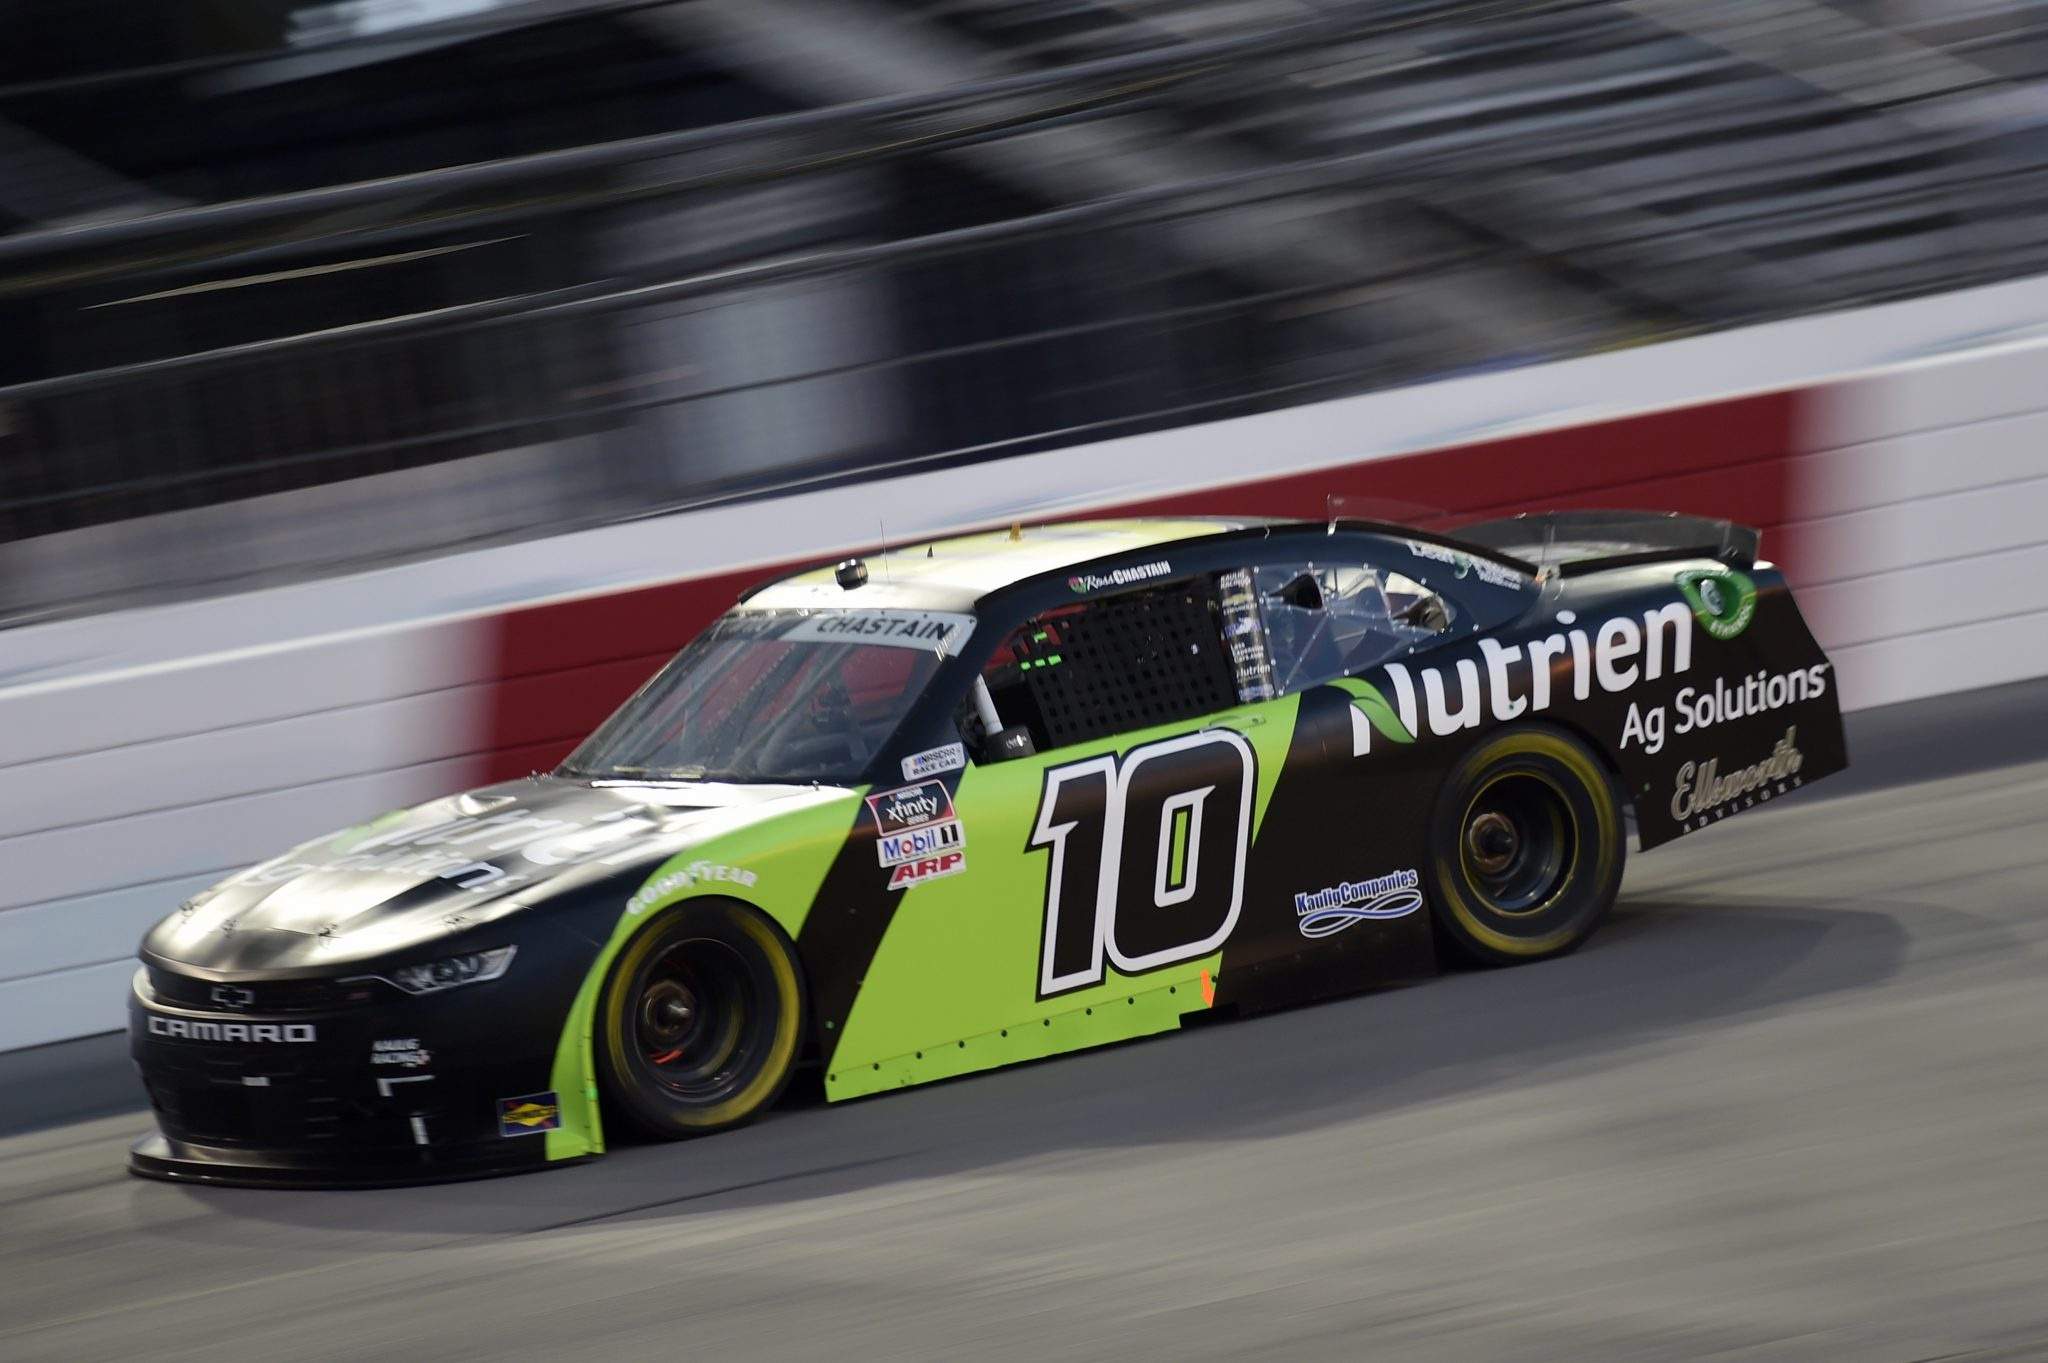 RICHMOND, VIRGINIA - SEPTEMBER 11: Ross Chastain, driver of the #10 Nutrien Ag Solutions Chevrolet, drives during the NASCAR Xfinity Series Go Bowling 250 at Richmond Raceway on September 11, 2020 in Richmond, Virginia. (Photo by Jared C. Tilton/Getty Images) | Getty Images